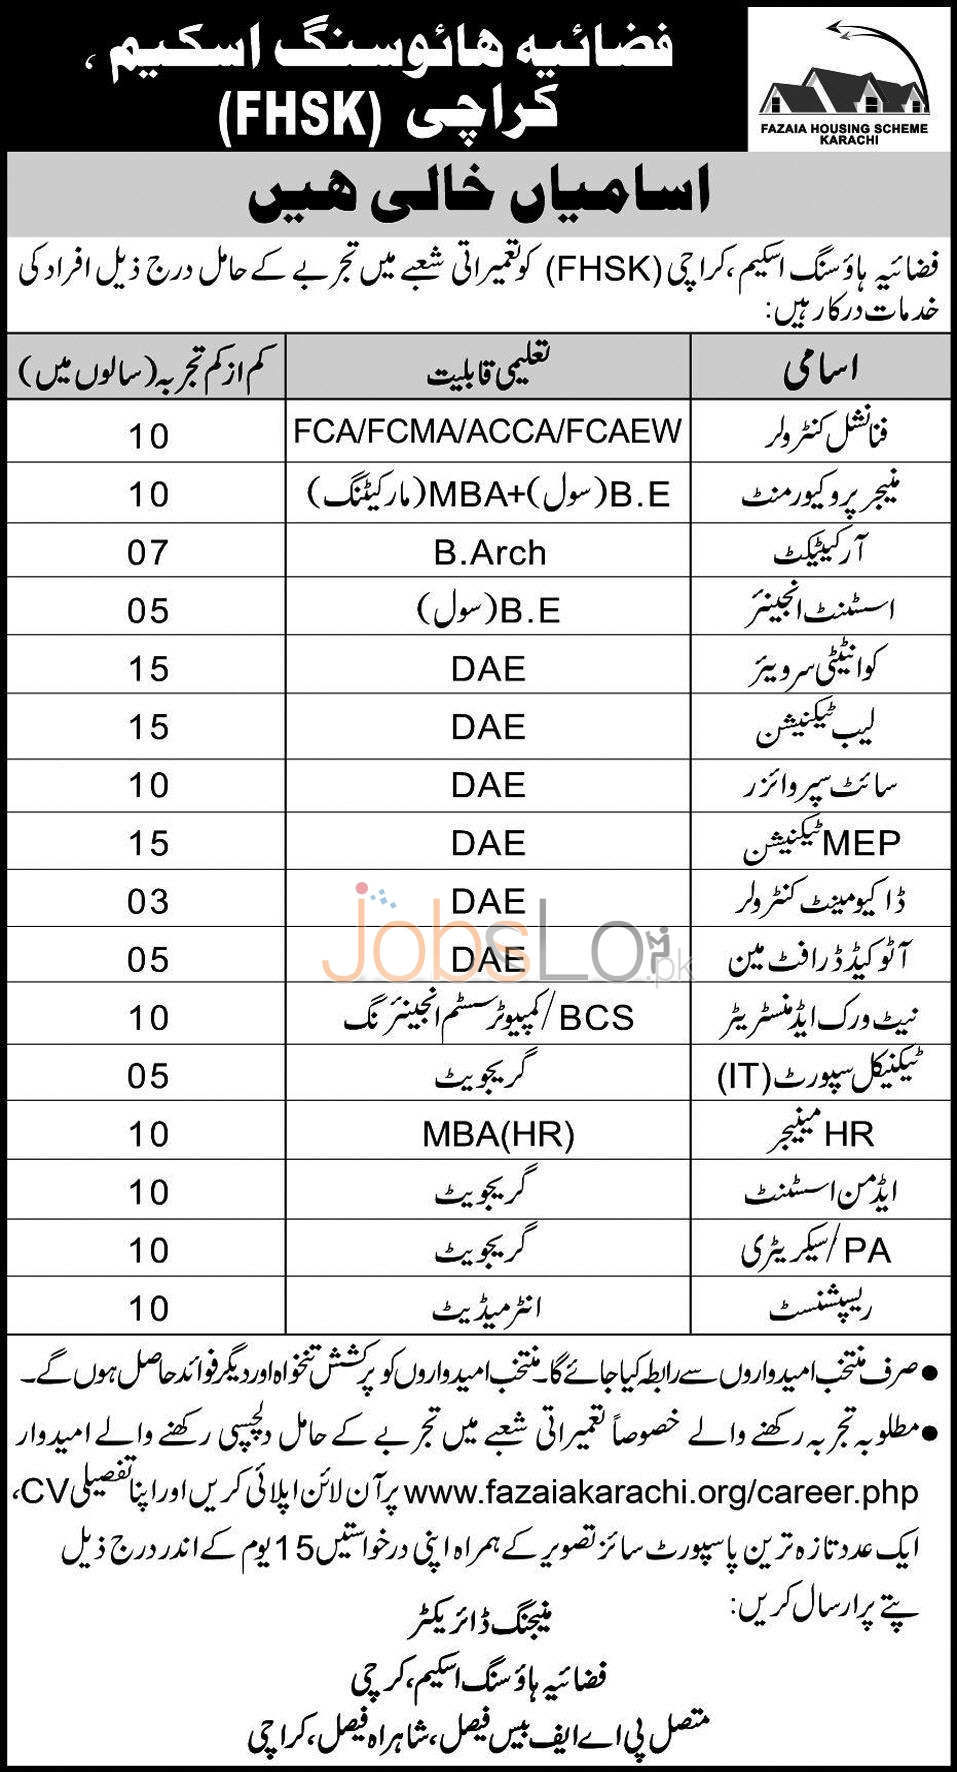 Fazaia Housing Scheme Karachi Jobs 2016